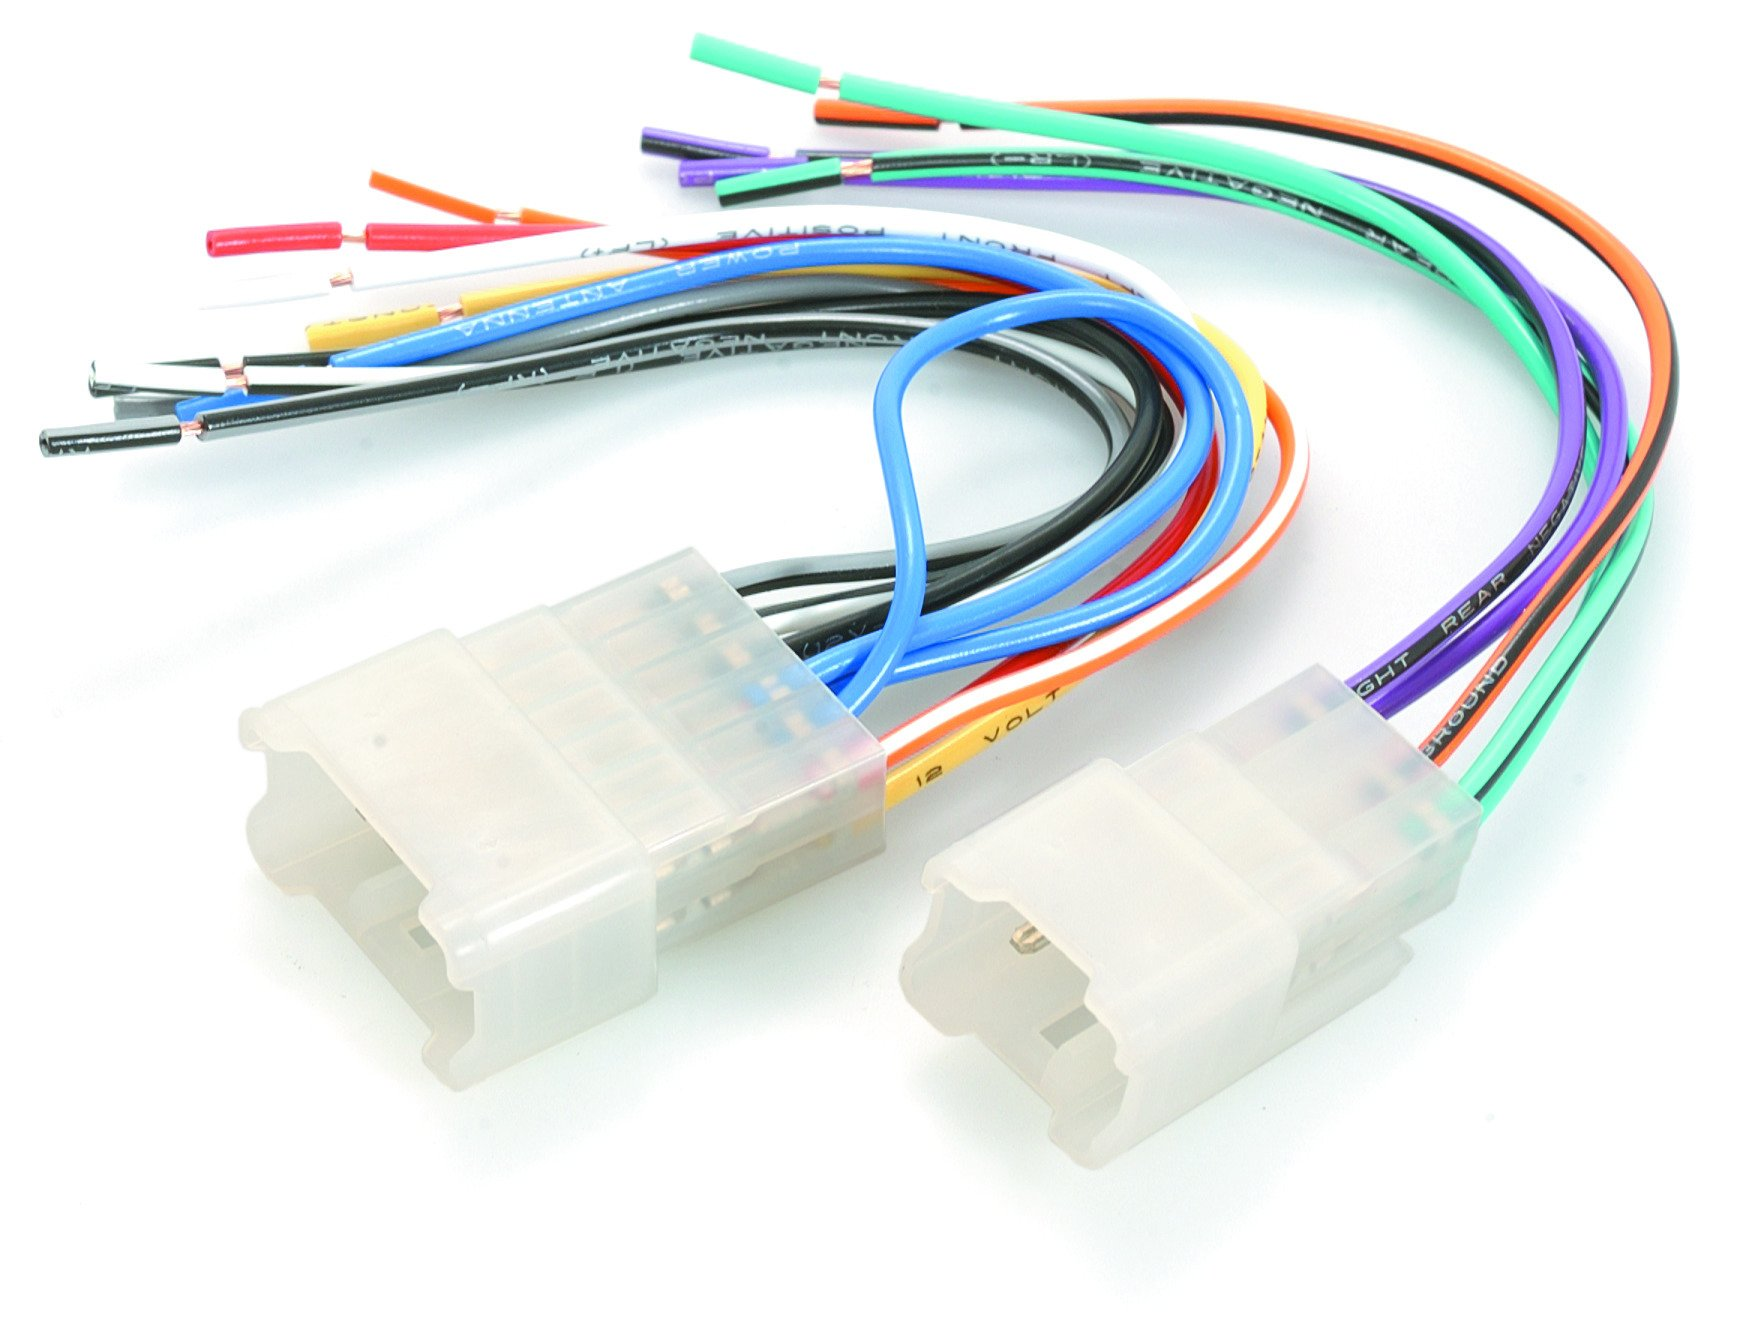 Boat Wiring Harness Kit Australia Simple Diagram Marine Aerpro Online Specs First Choice